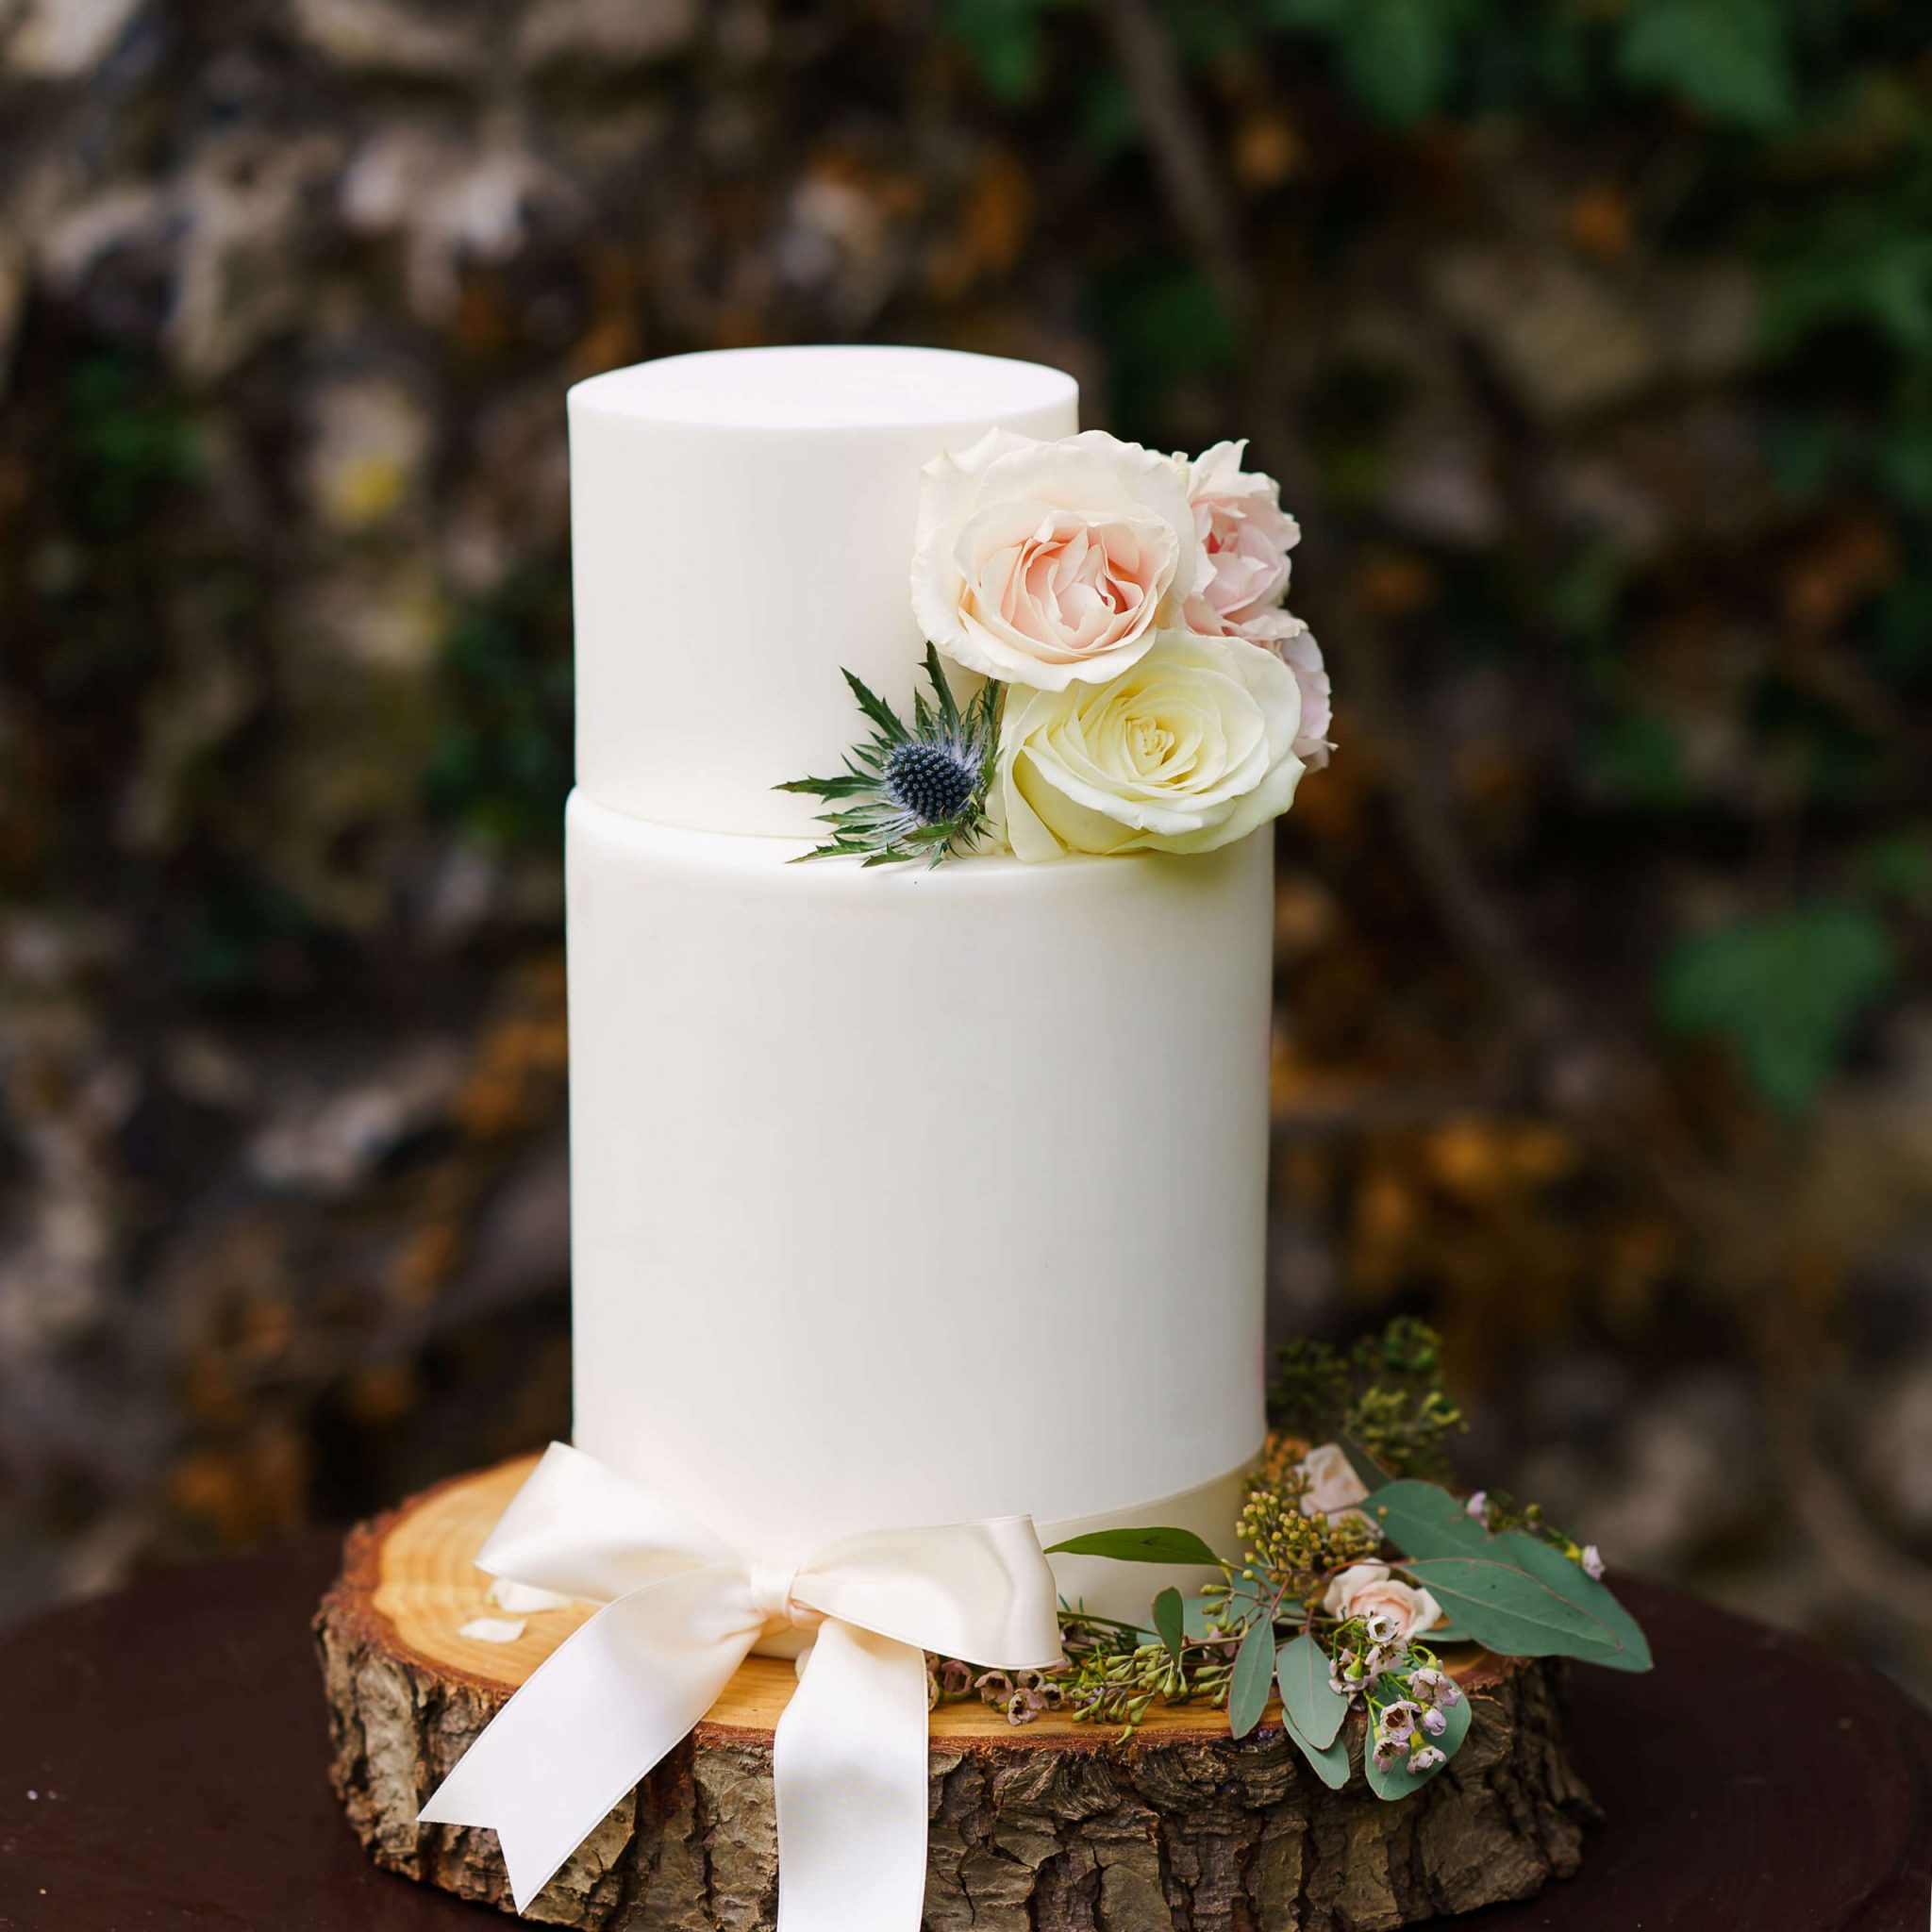 Simple Fondant Wedding Cake - Water Garden Weddings, Winchester, Hampshire - Love from Lila